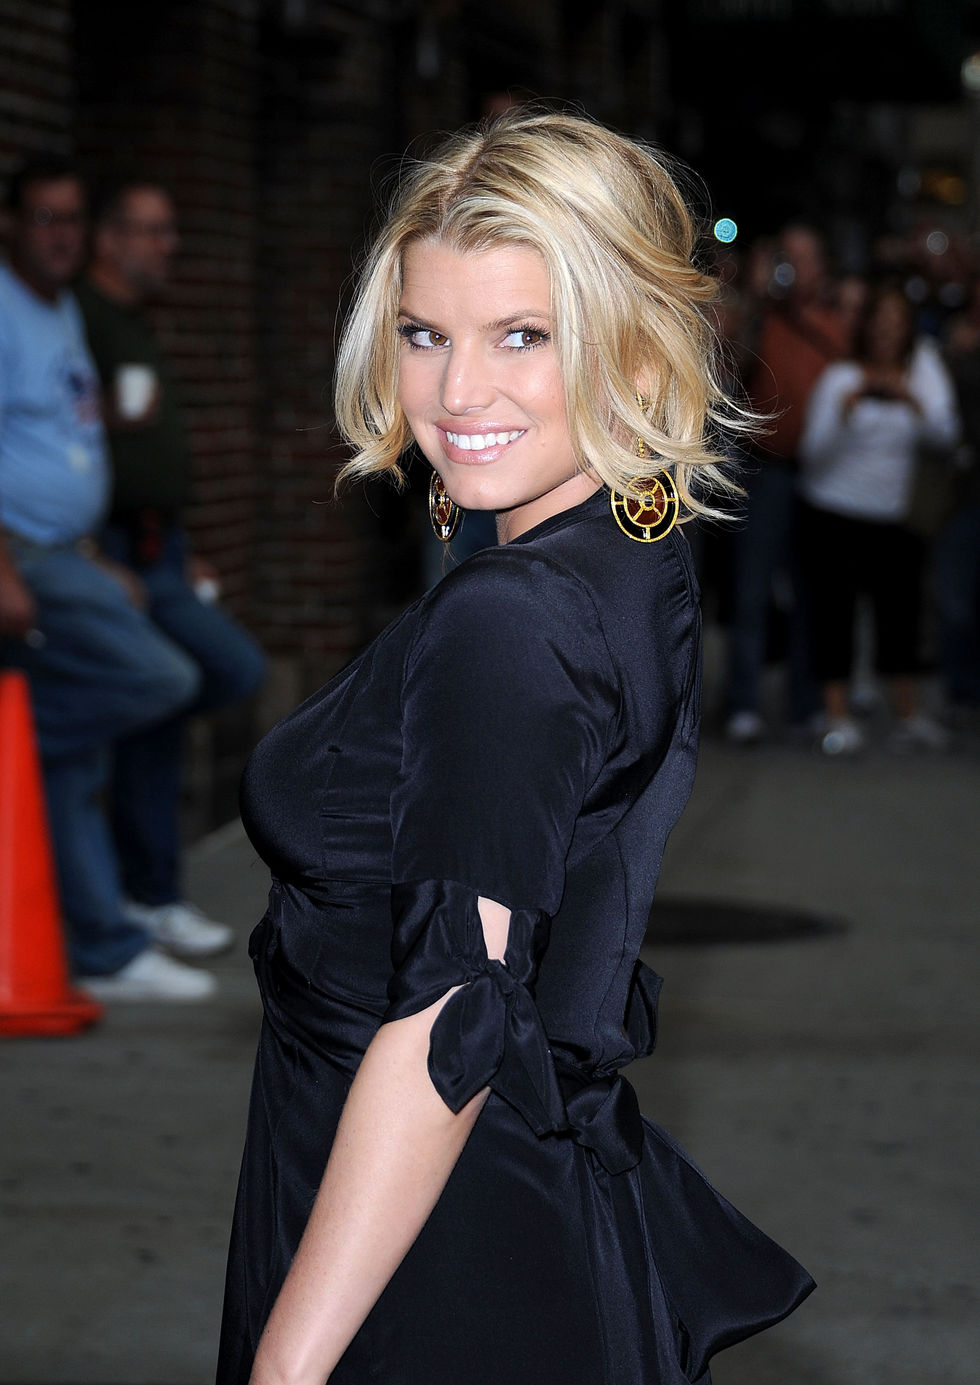 jessica-simpson-at-the-late-show-with-david-letterman-in-new-york-city-05